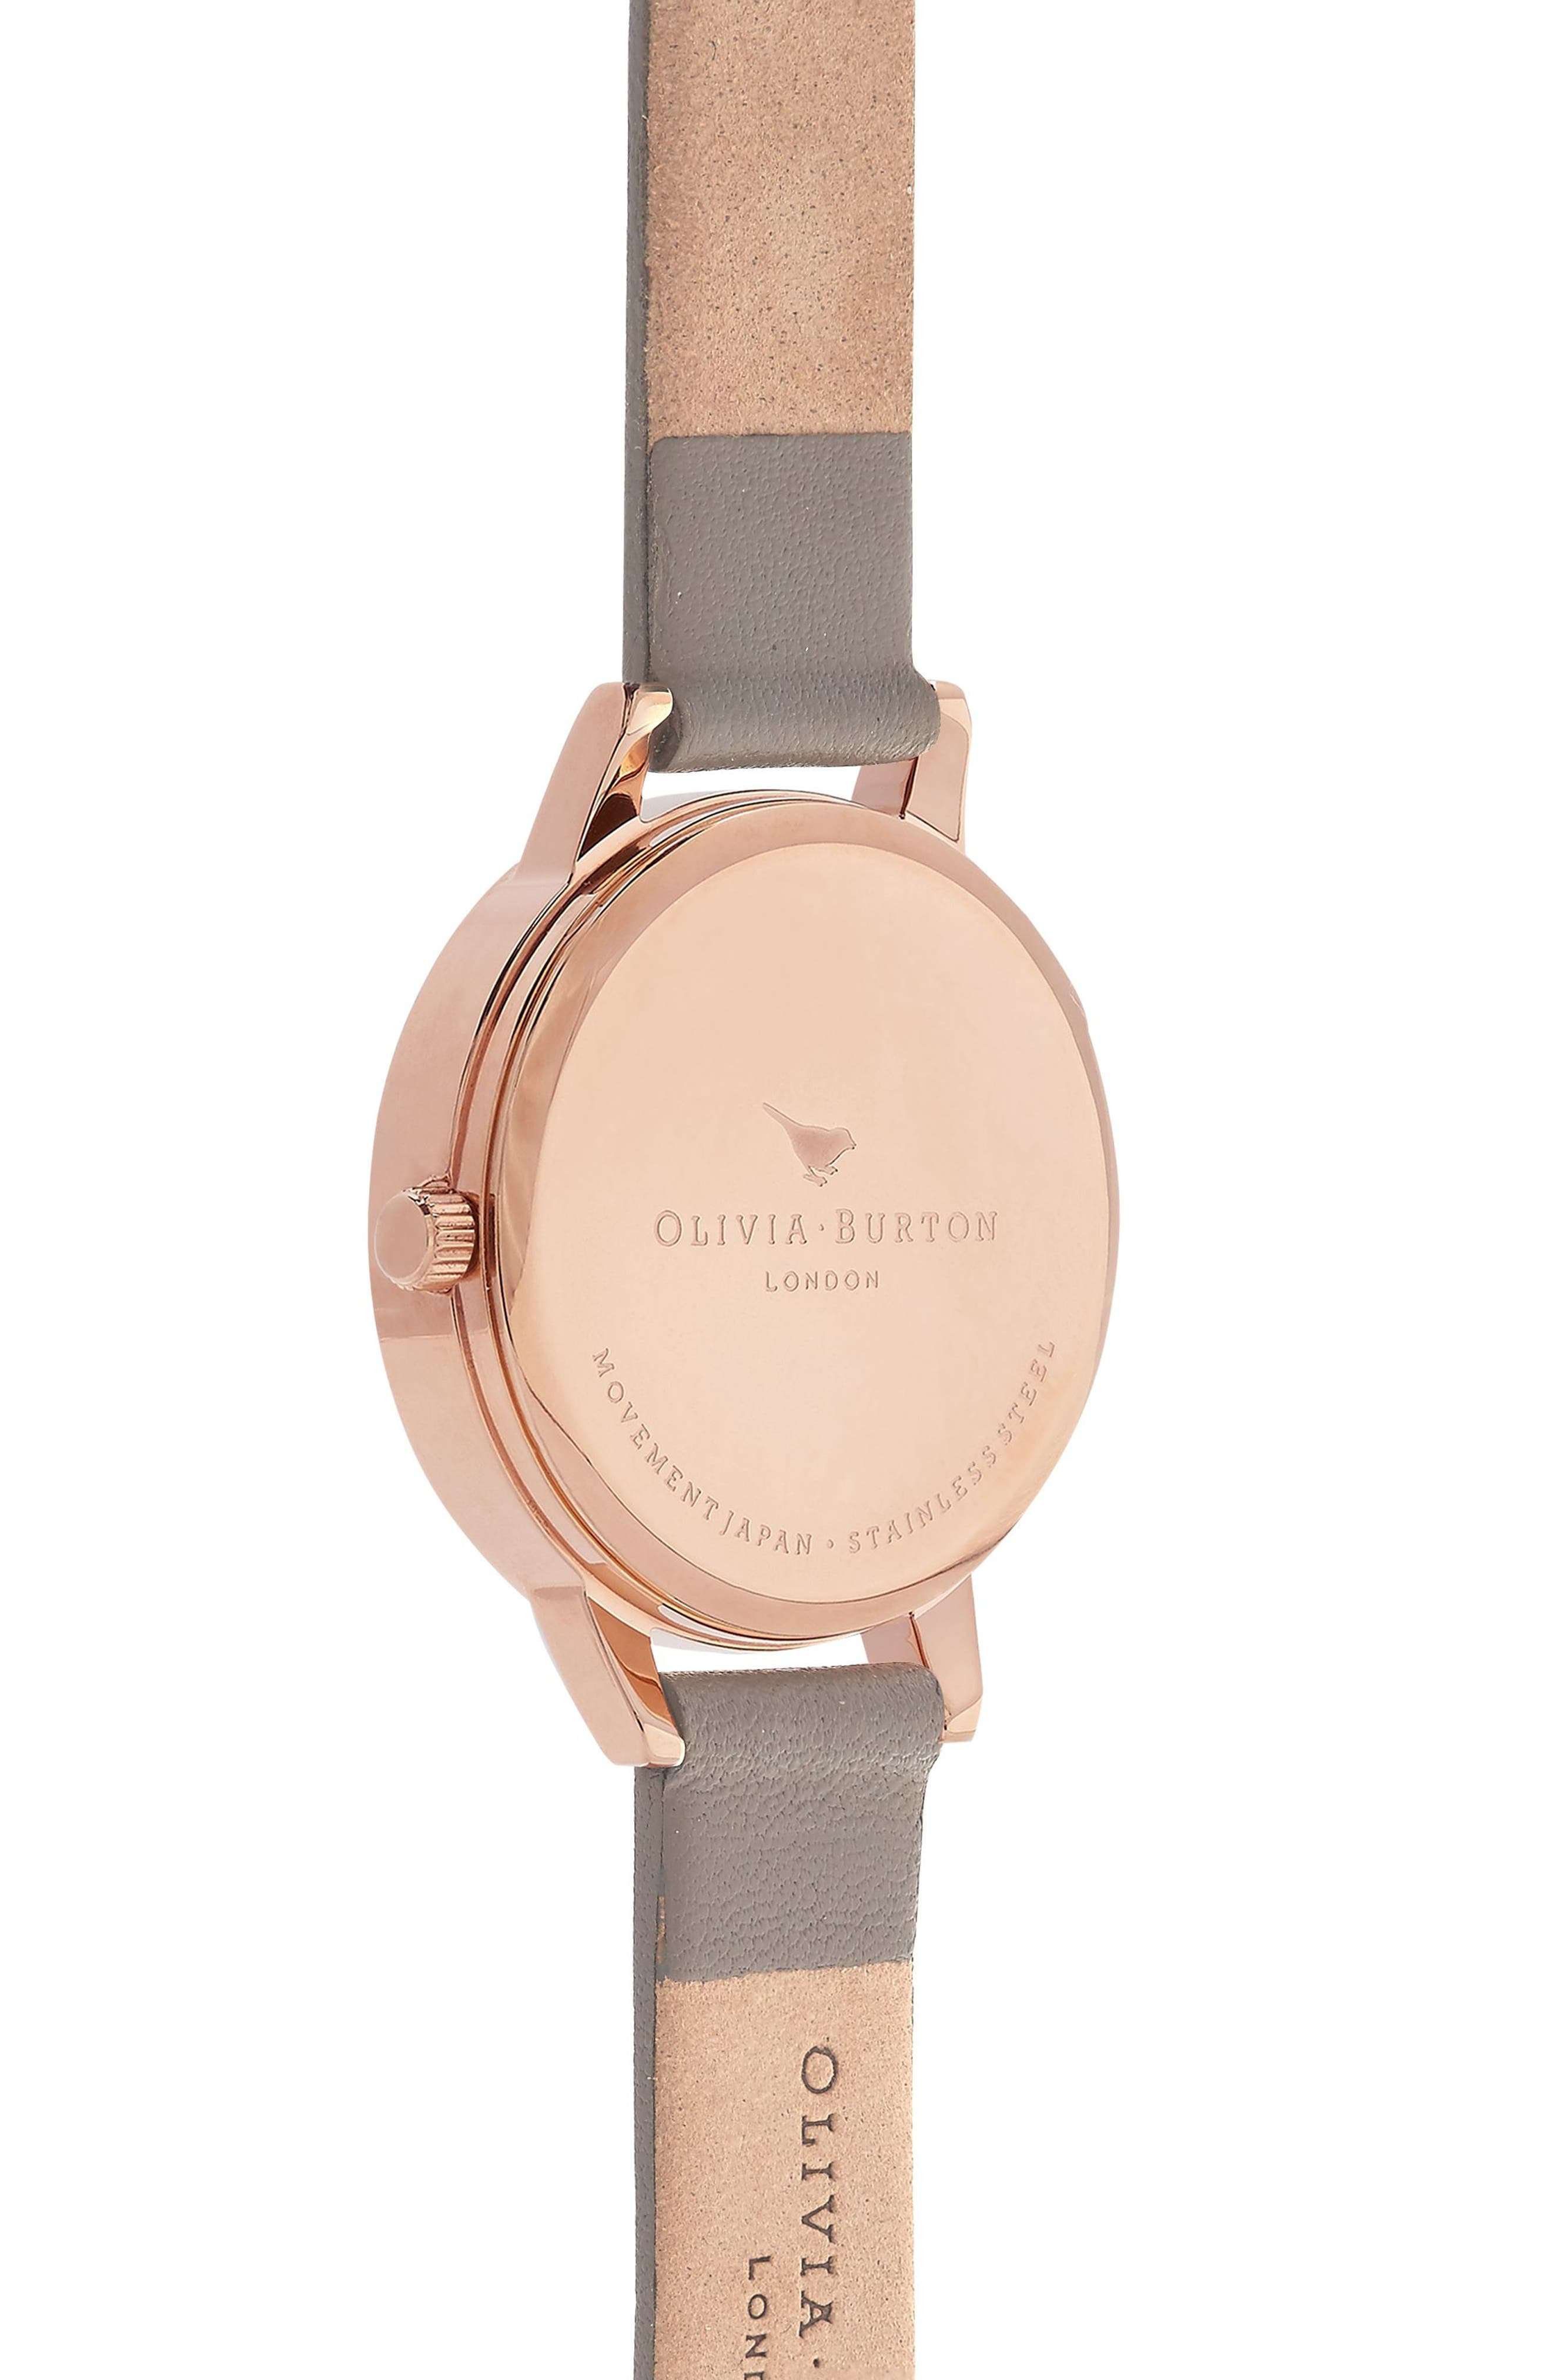 Enchanted Garden Leather Strap Watch, 30mm,                             Alternate thumbnail 2, color,                             Grey/ Floral/ Rose Gold